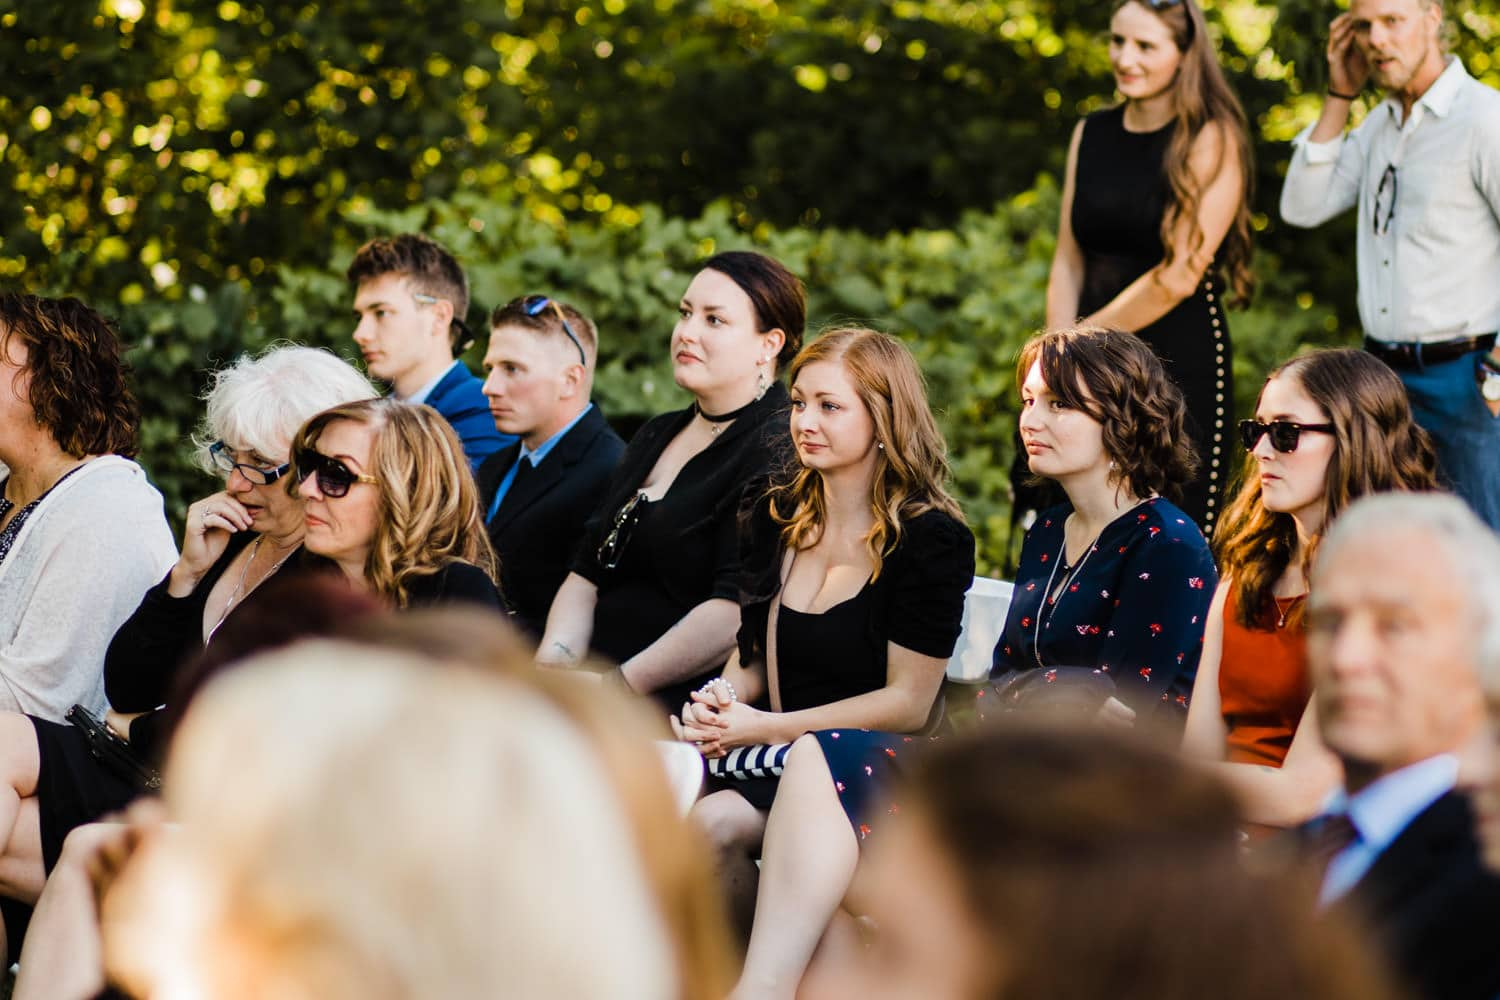 guests cry during wedding ceremony - ottawa wedding photographer - carley teresa photography